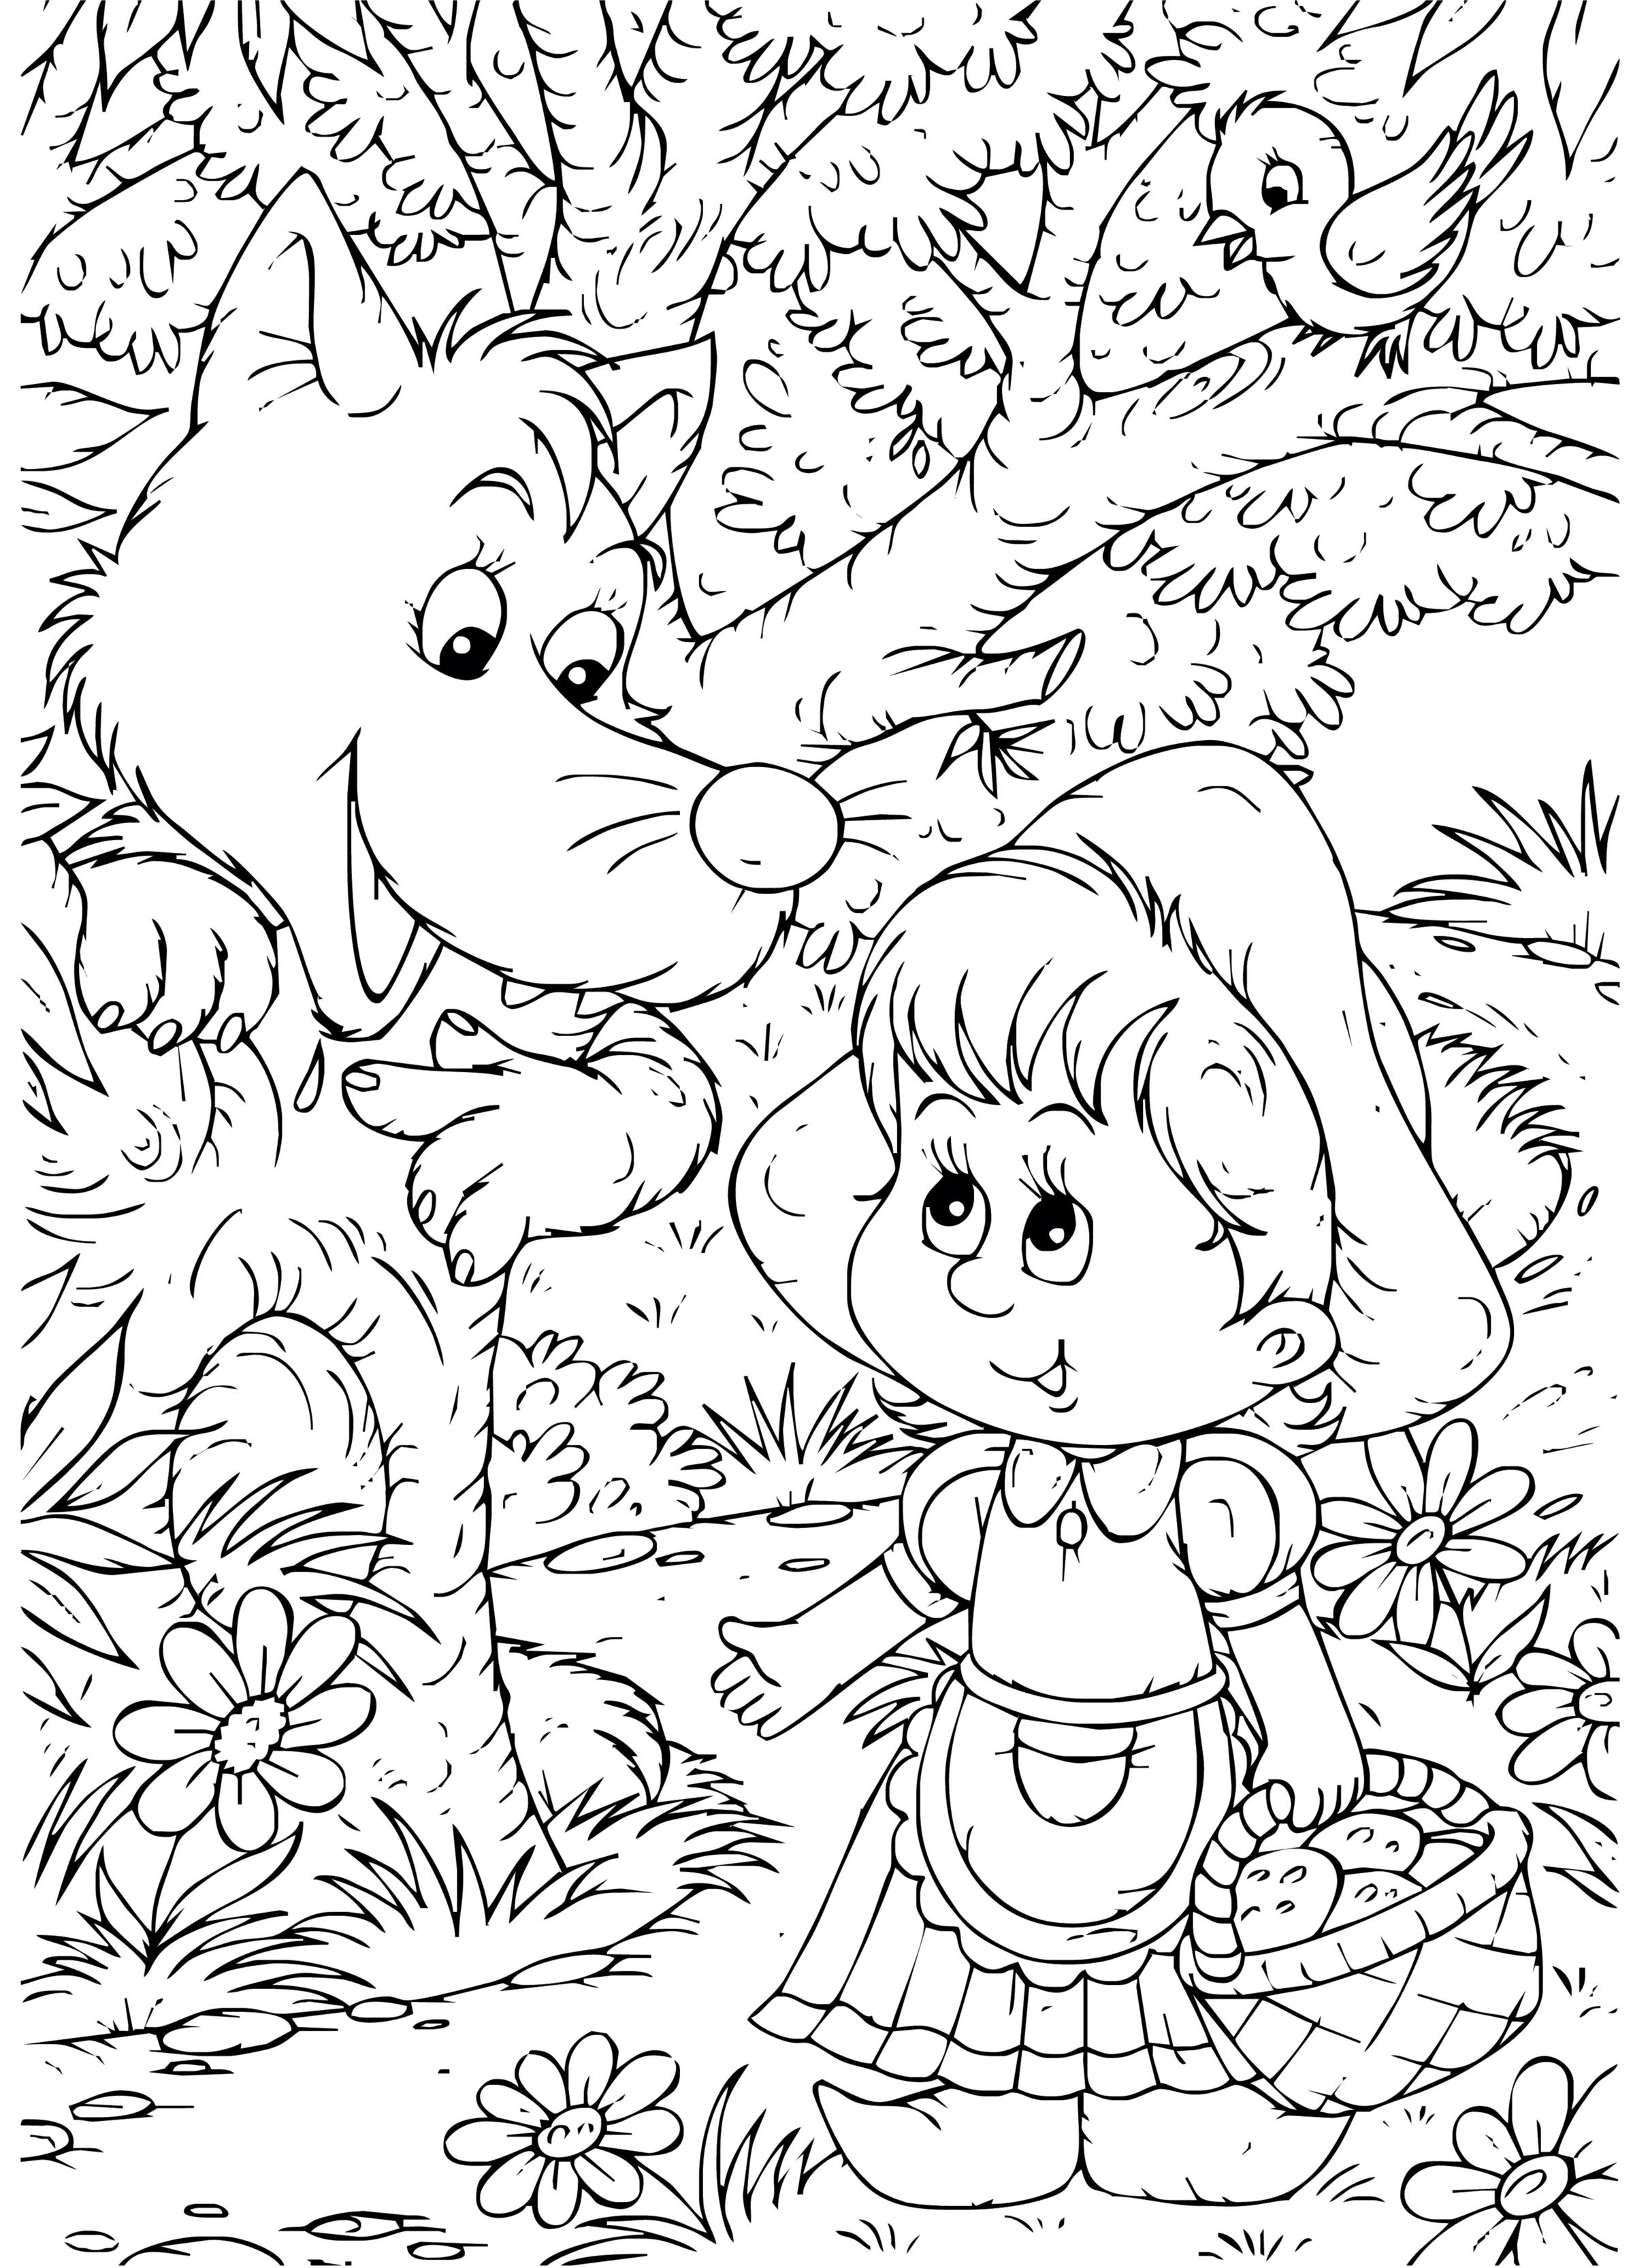 Uncategorized Little Red Riding Hood Coloring Page little red riding hood coloring page i would use these for early arrivals additional